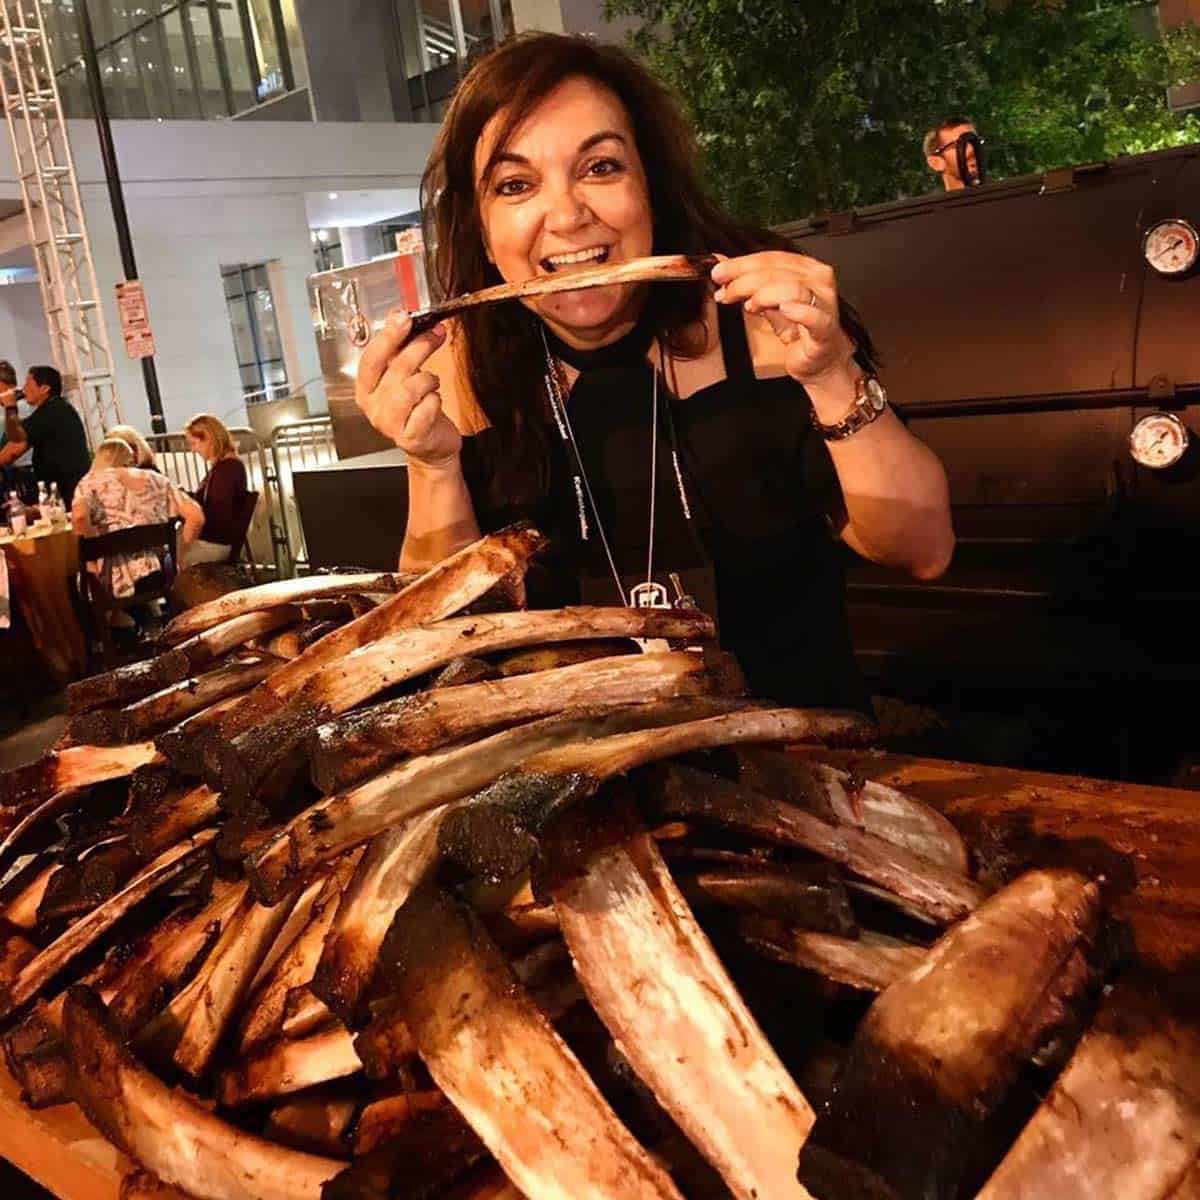 Isabel smiling with a stack of ribs